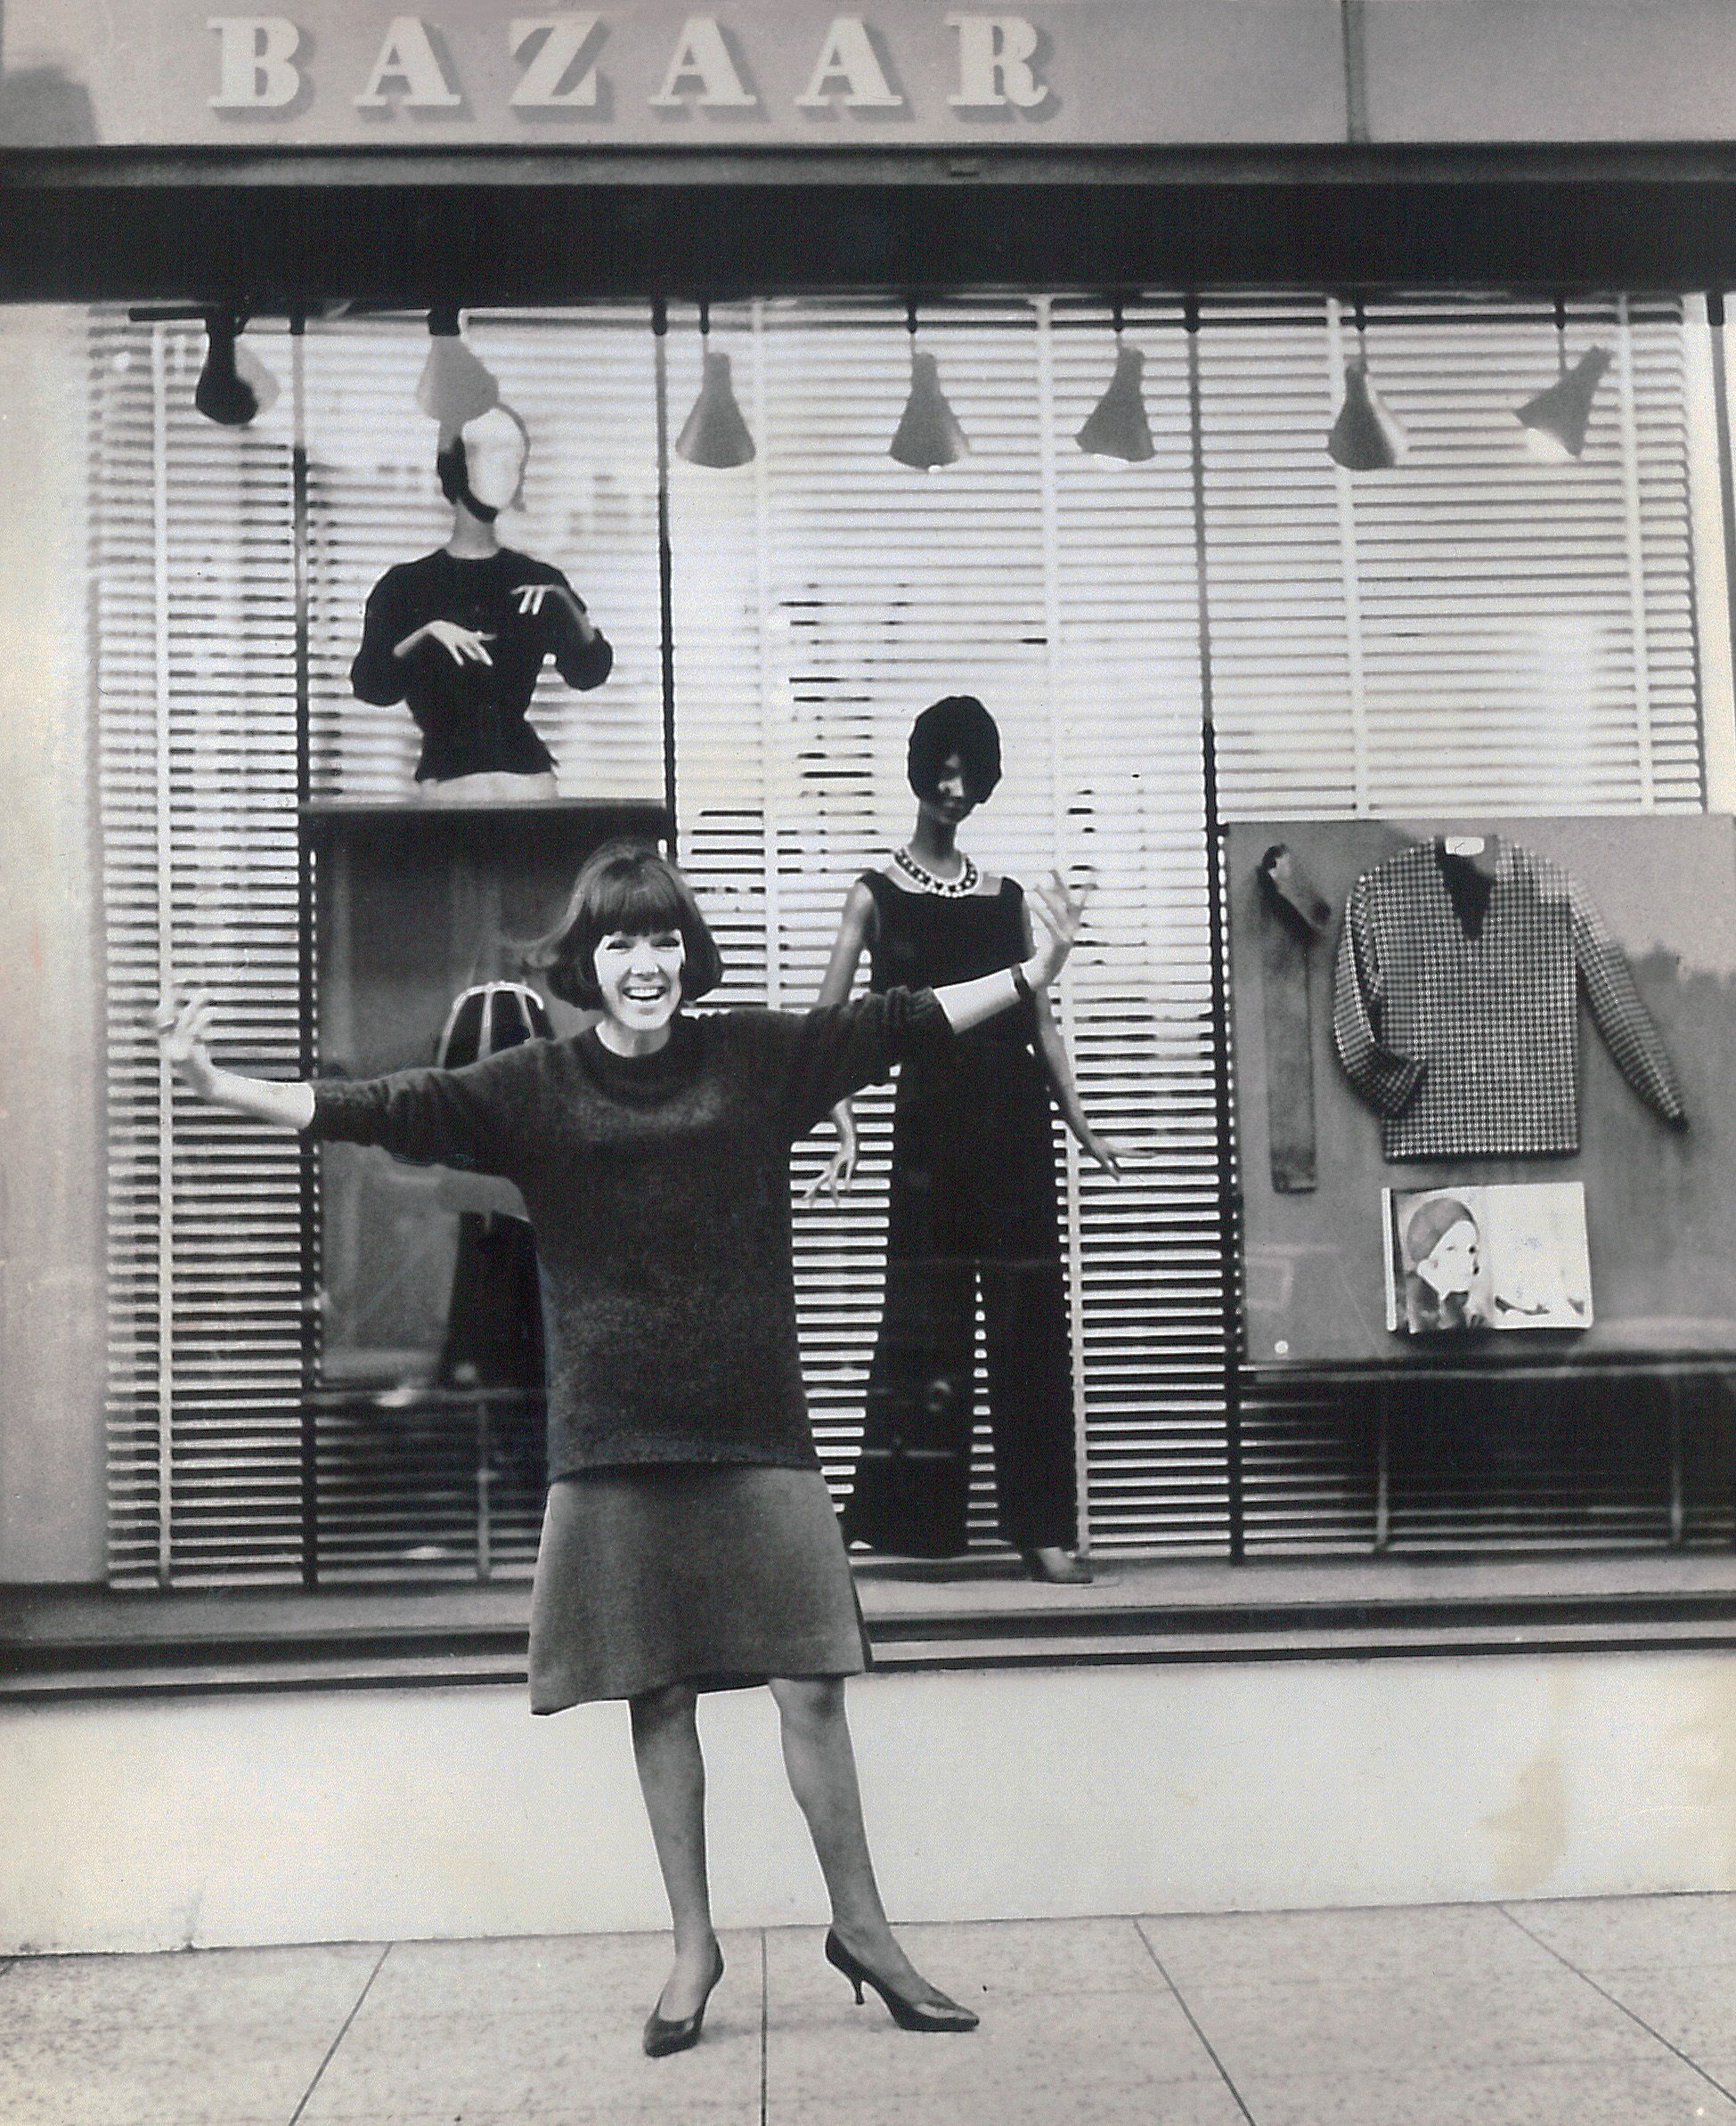 Mary Quant outside her shop Bazaar on the Kings Road, 1960s